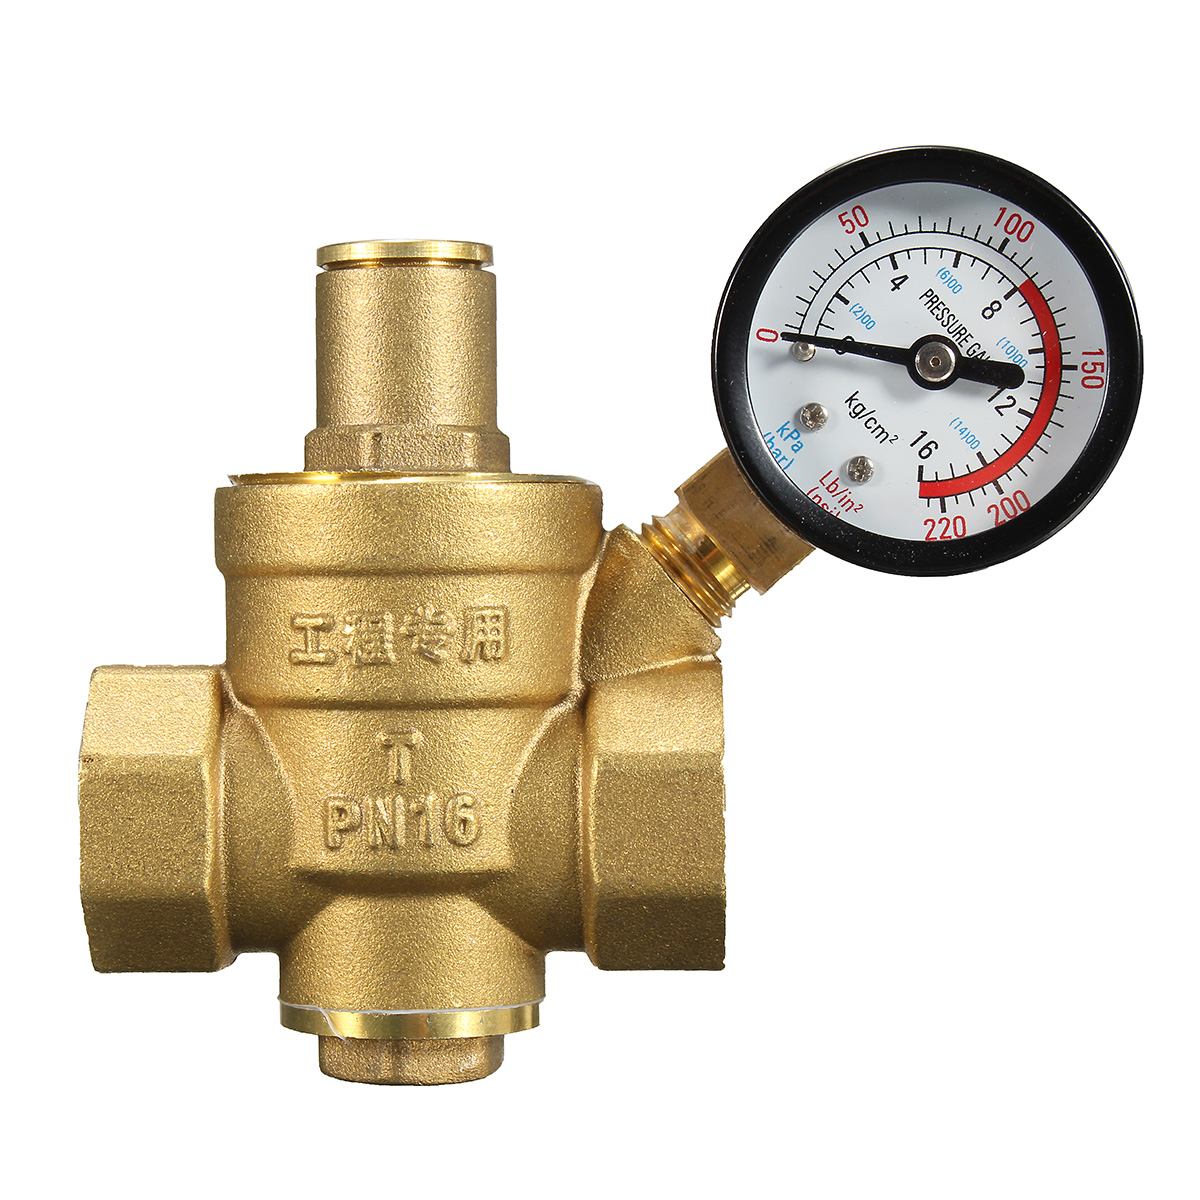 dn20 npt 3 4 adjustable brass water pressure regulator reducer with gauge meter alex nld. Black Bedroom Furniture Sets. Home Design Ideas